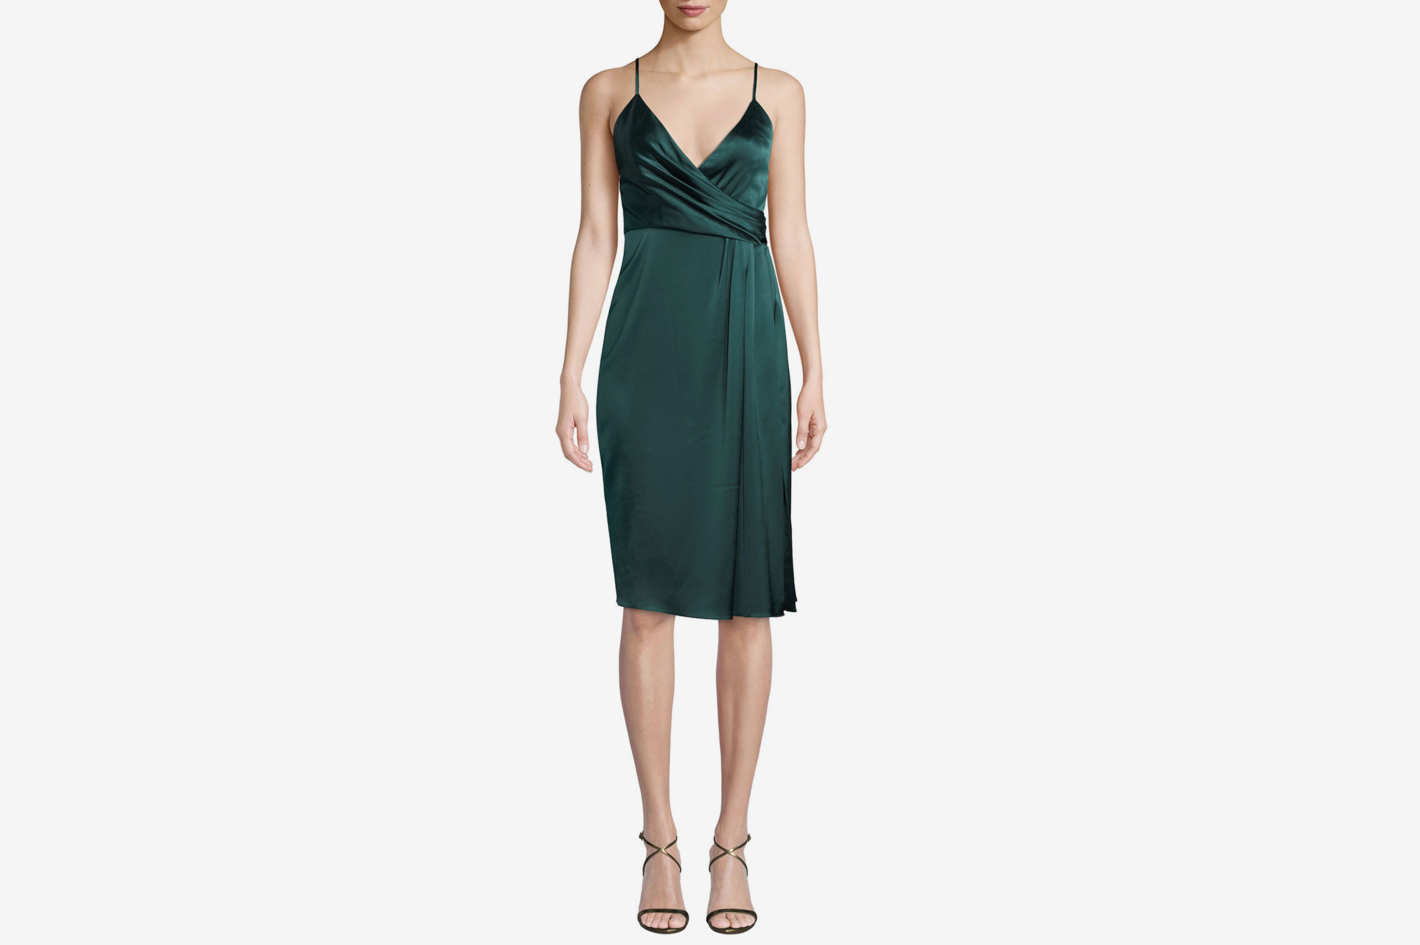 Jill Jill Stuart Wrap Dress